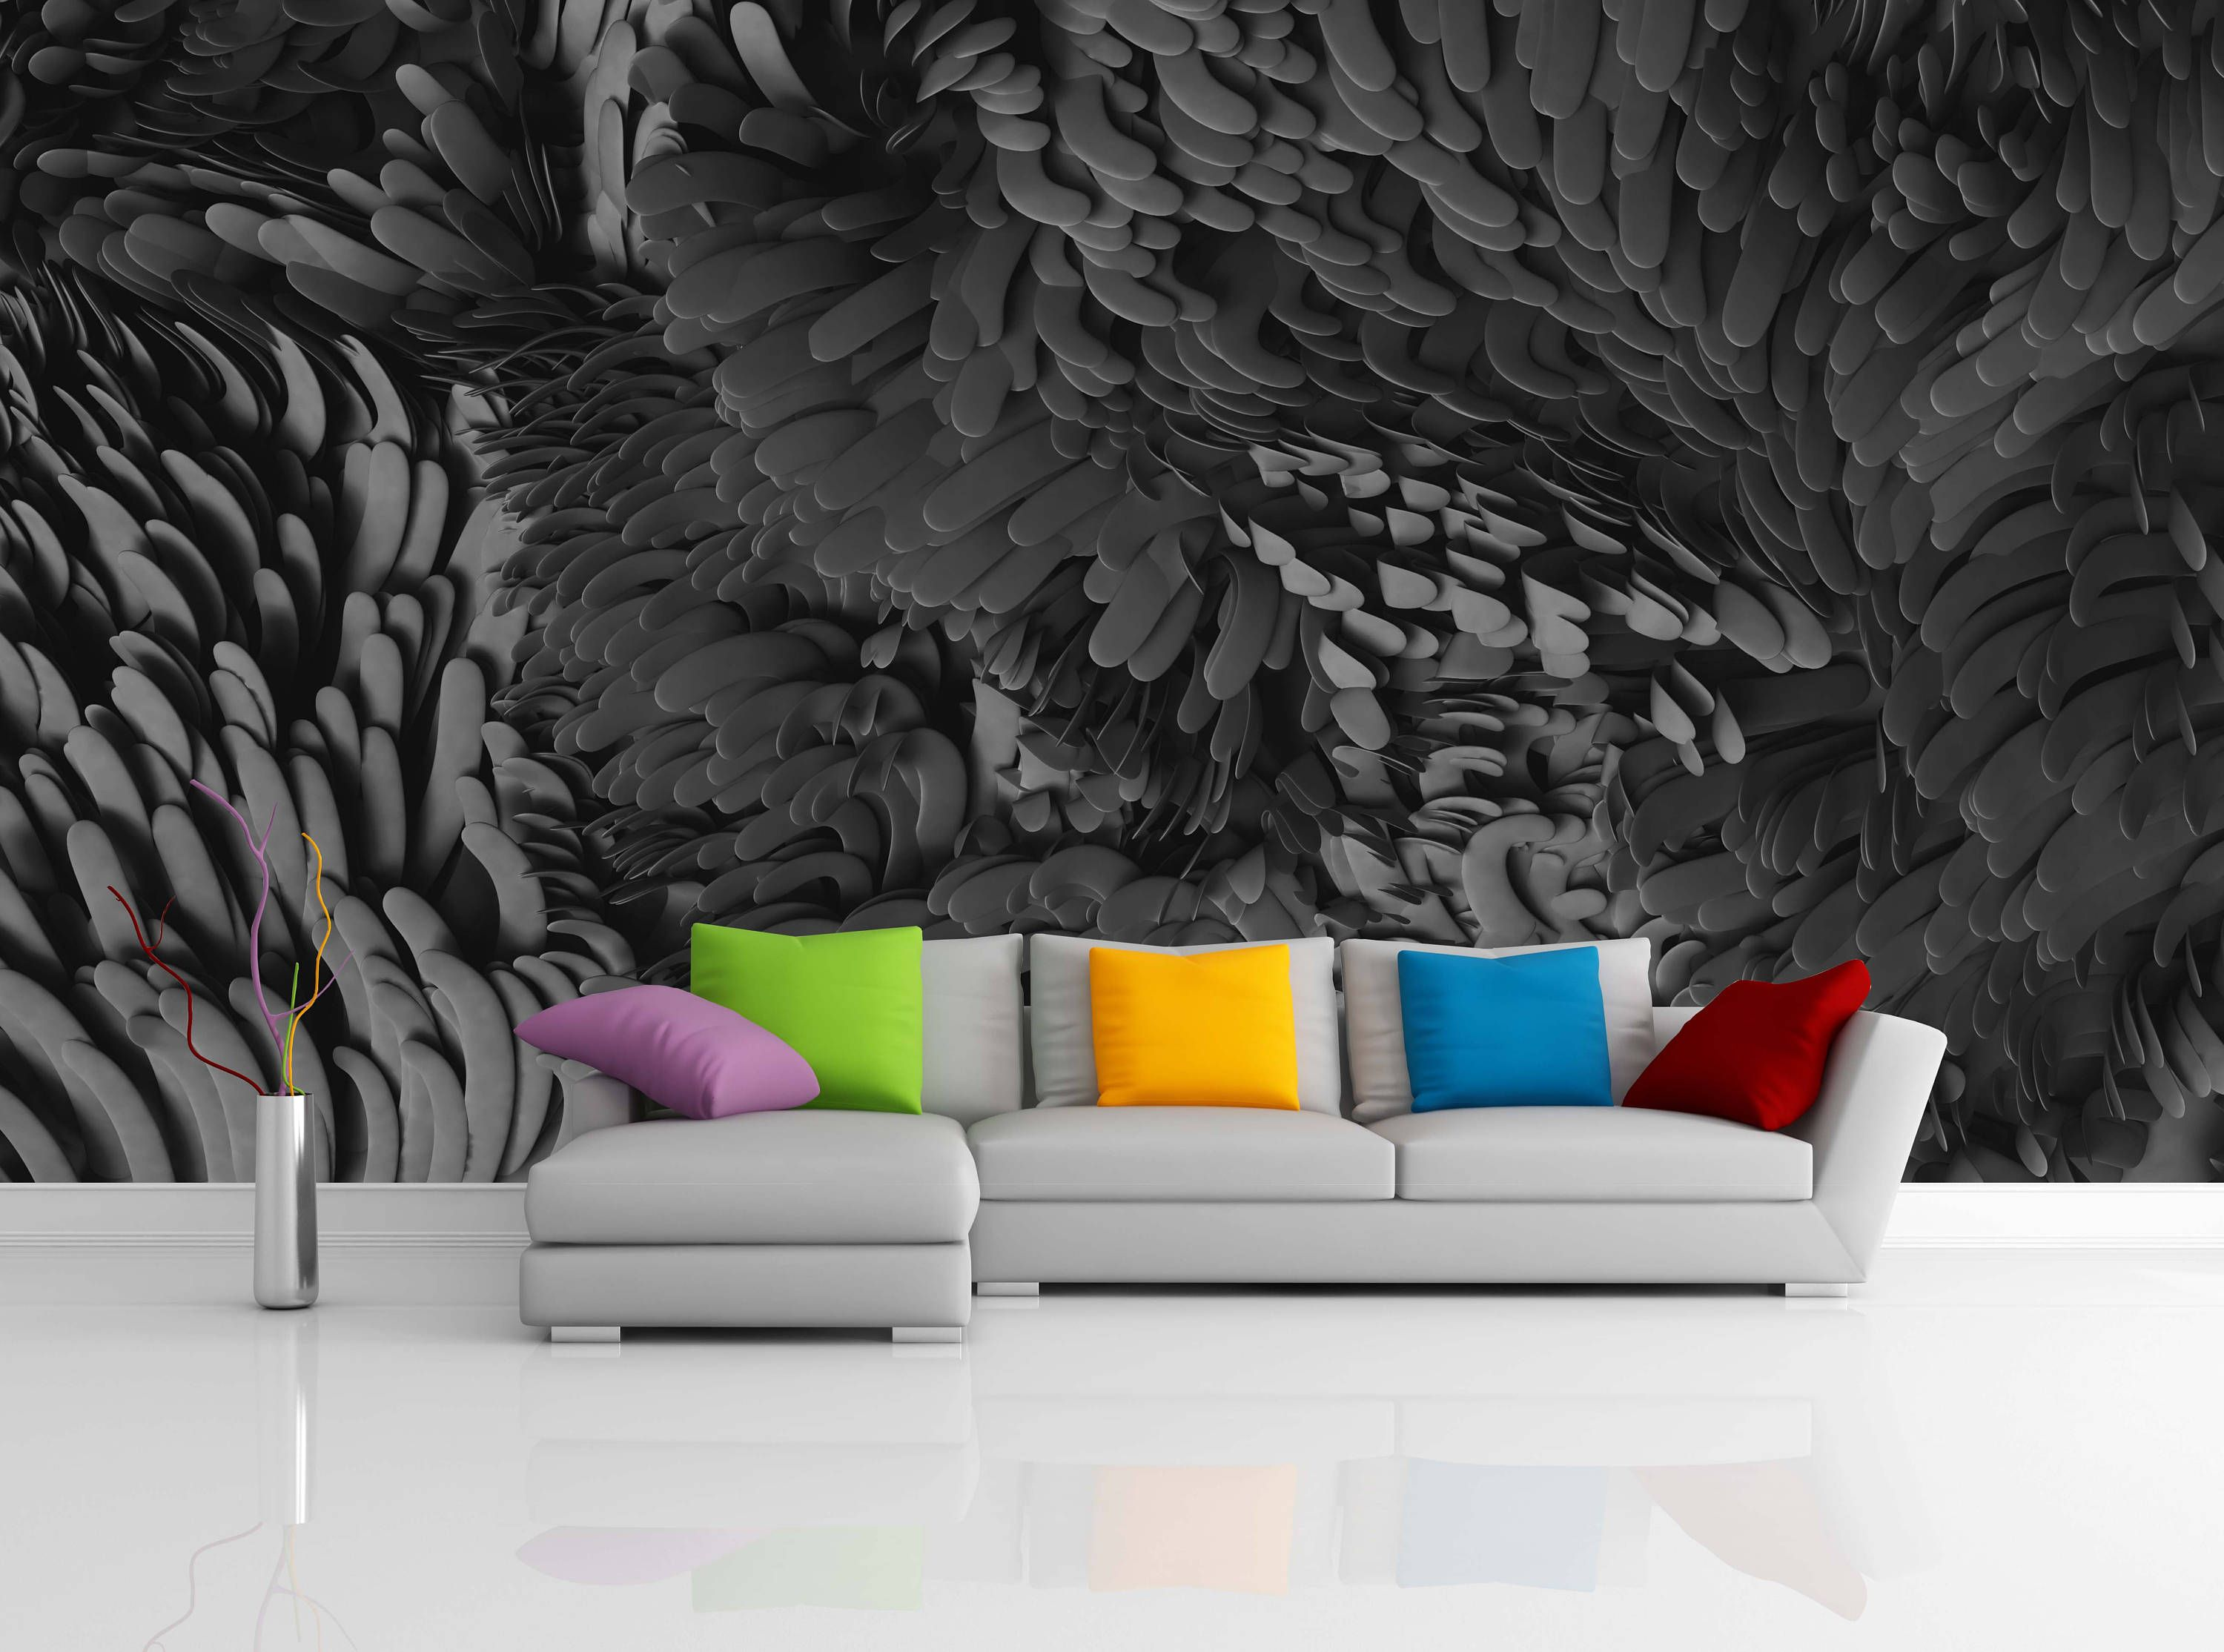 Removable Wallpaper Mural Peel & Stick Abstract 3D Wavy